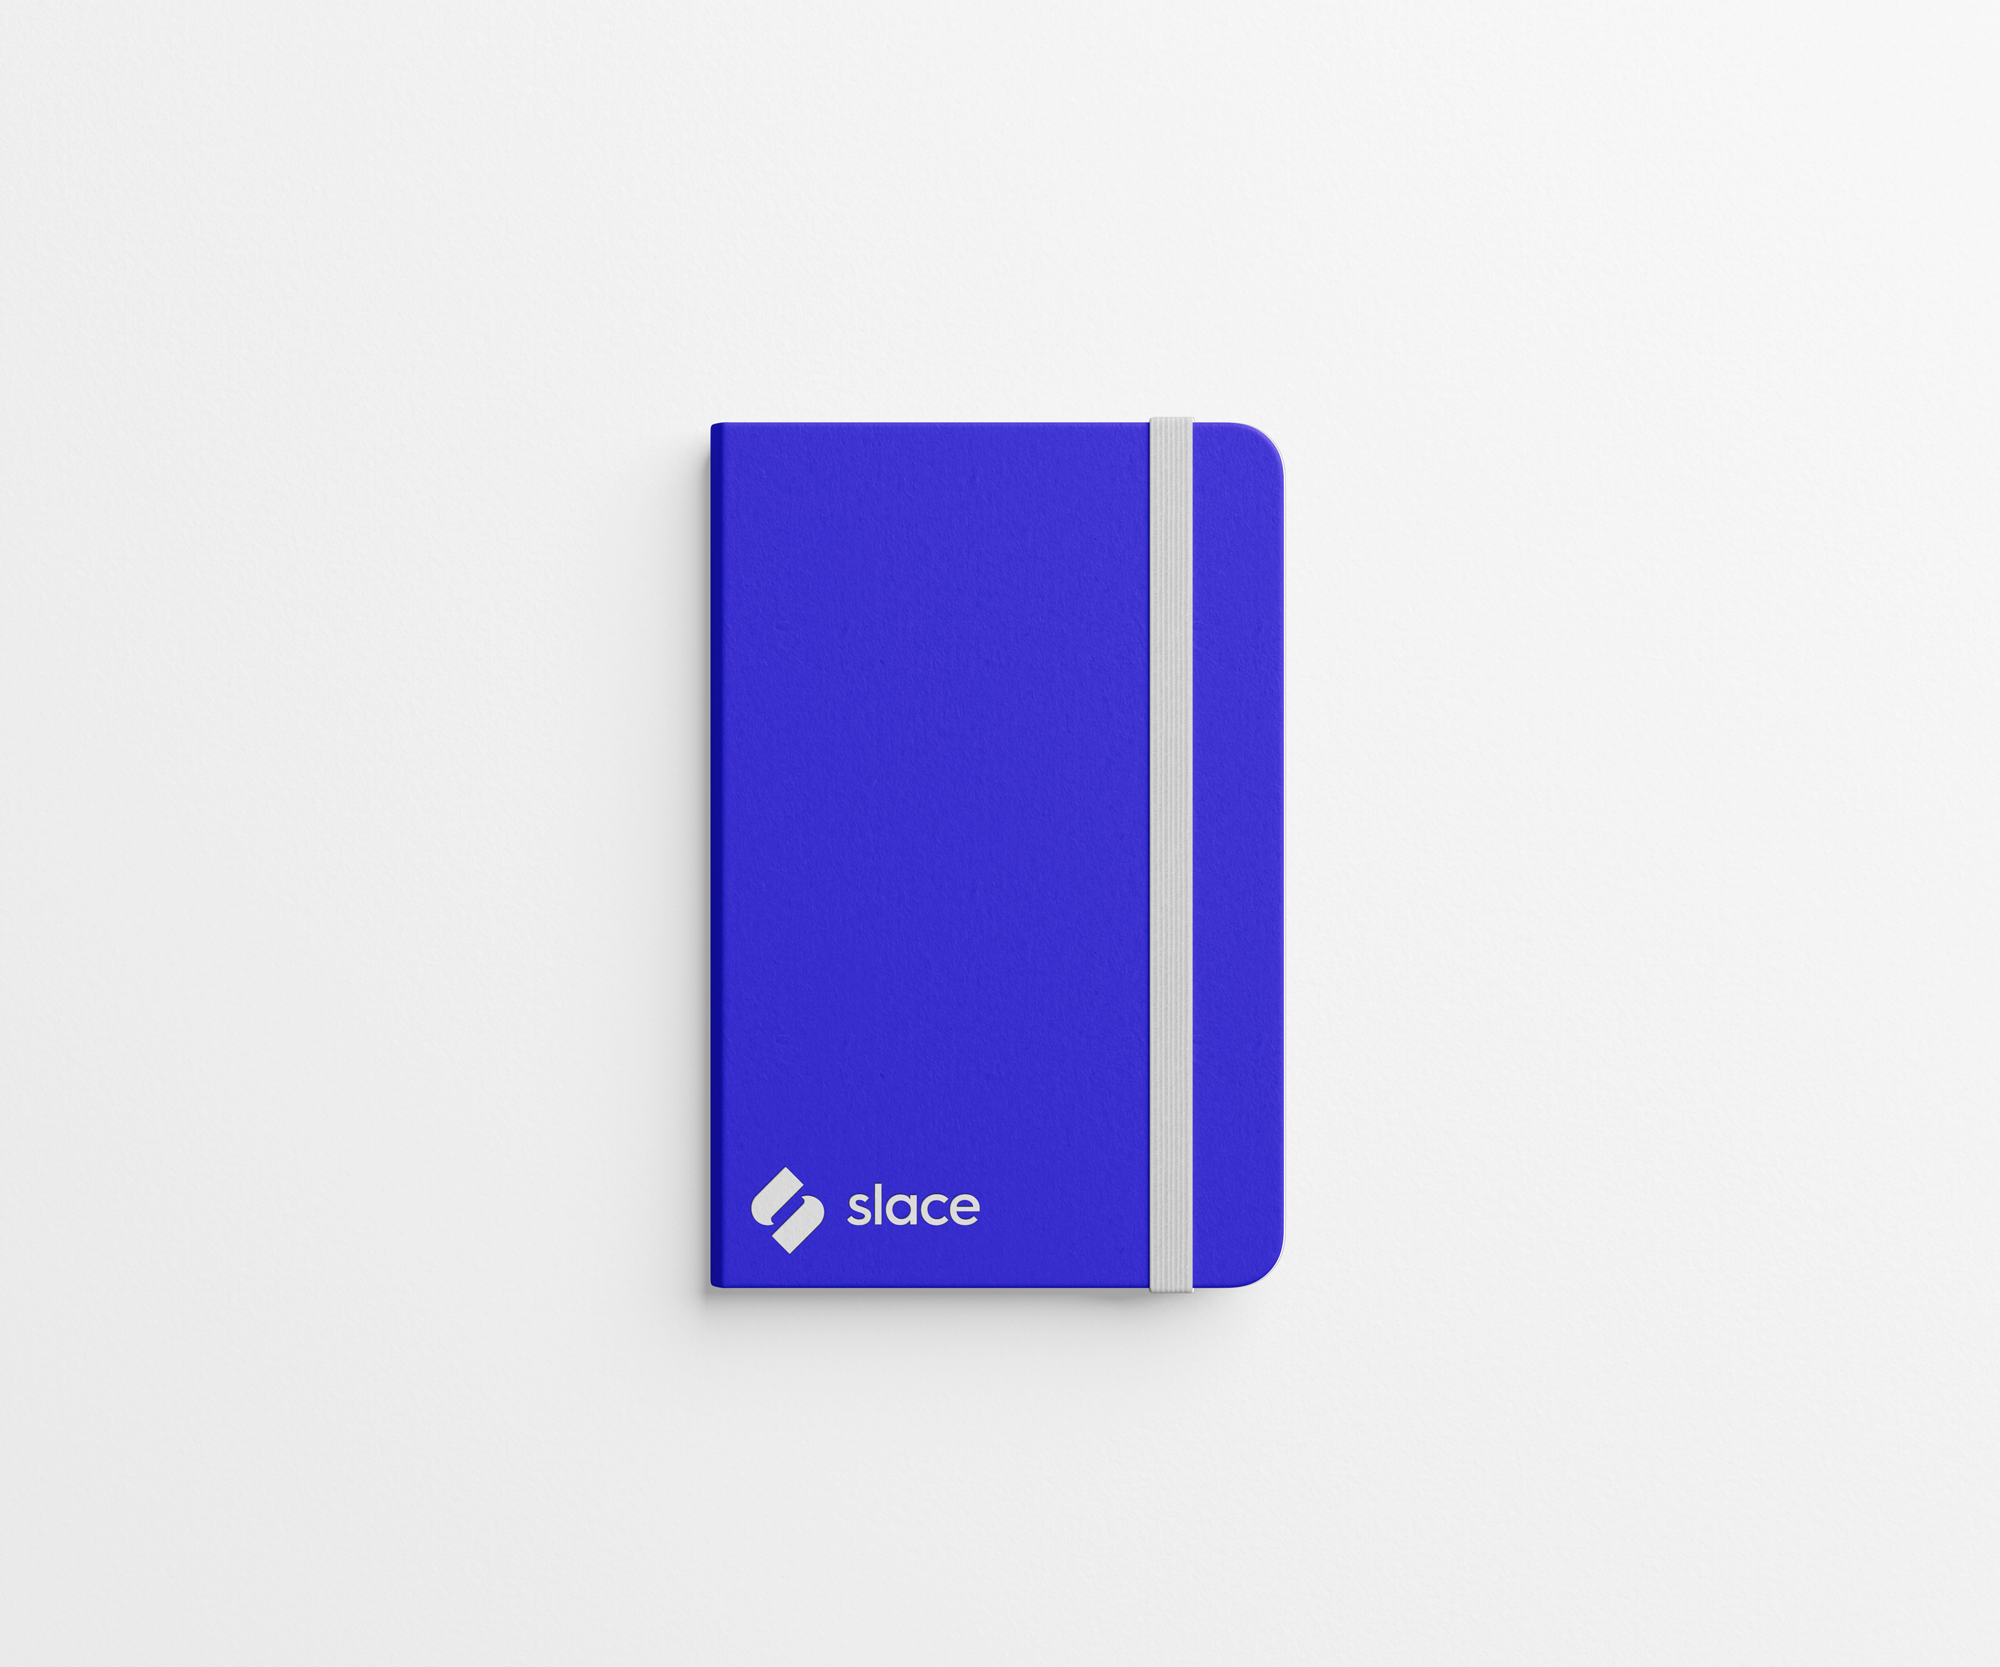 Slace branded notebook with blue cover